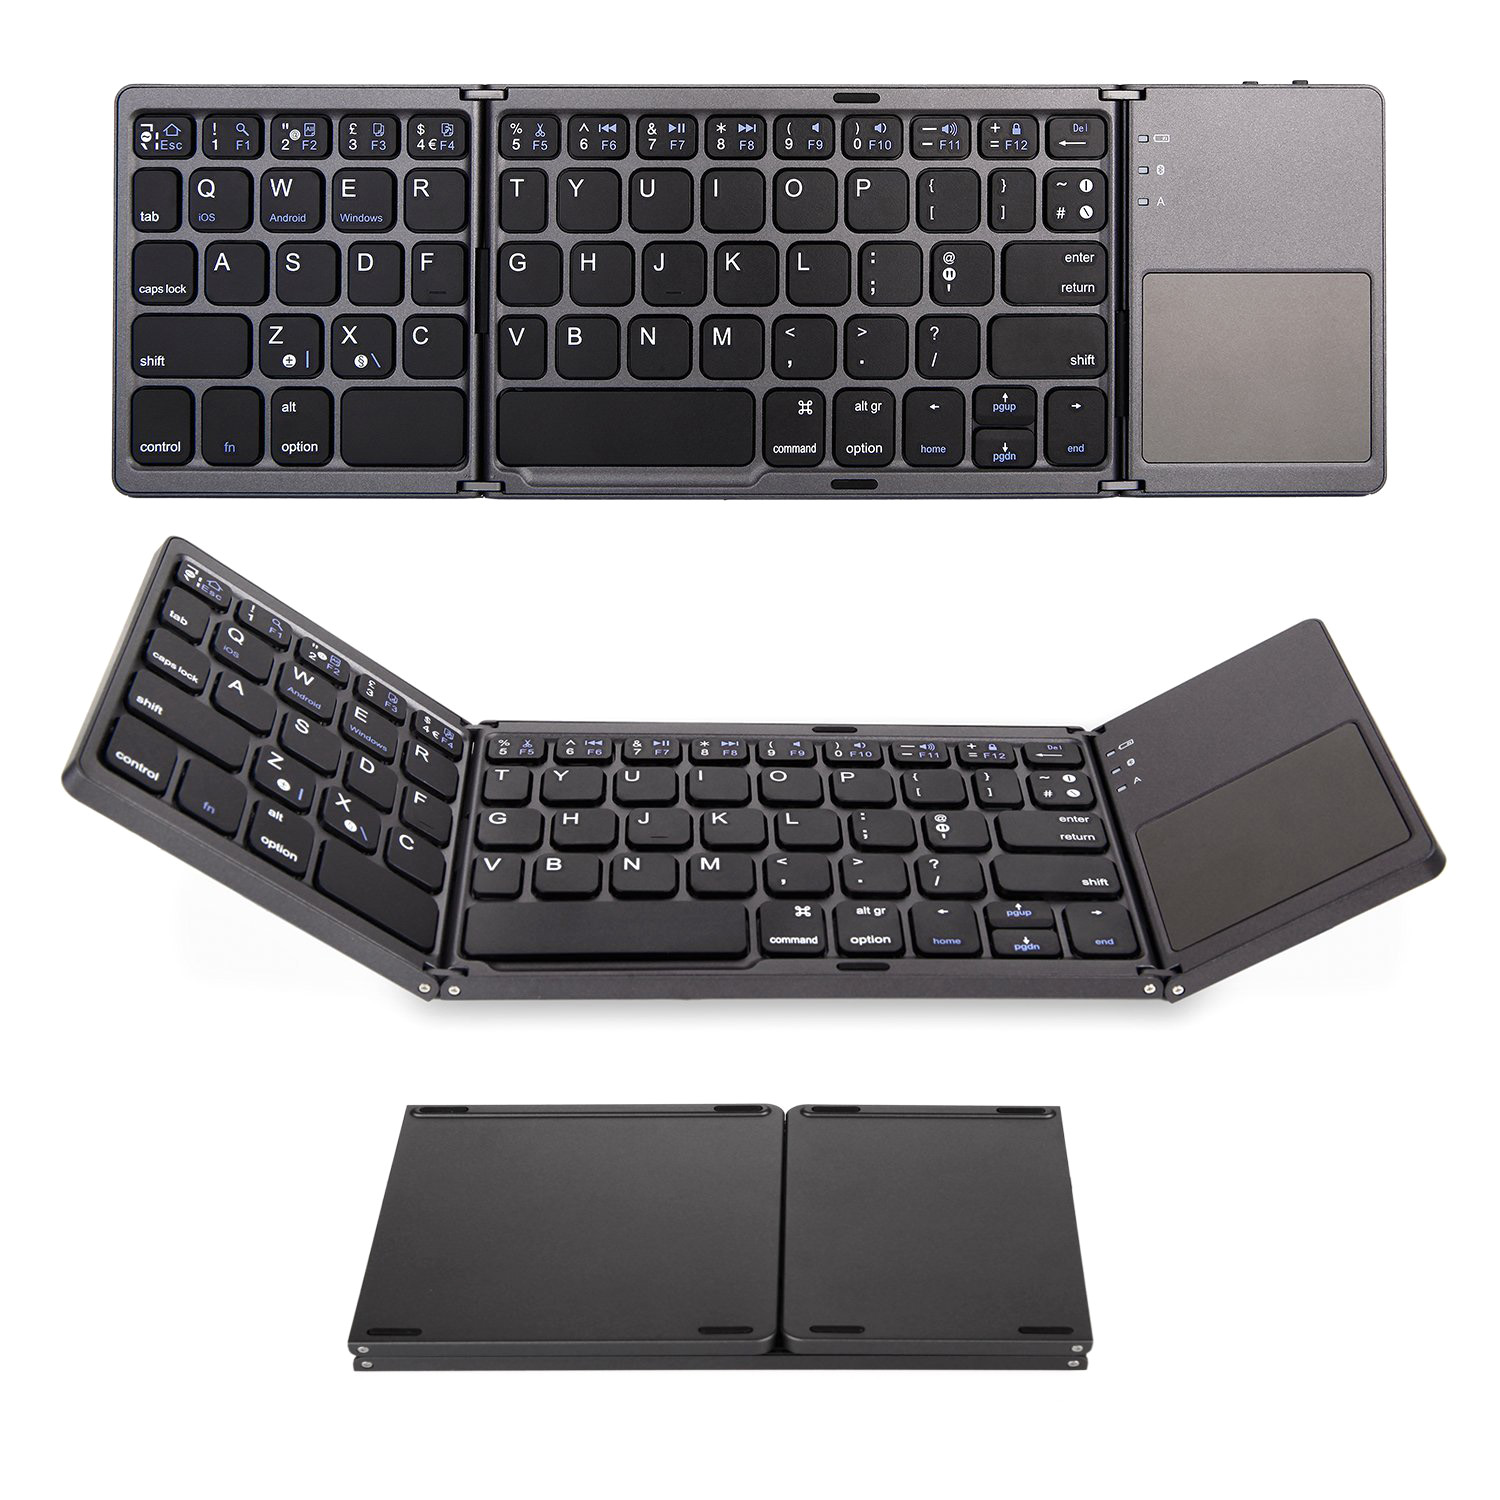 Gray Foldable Wireless Keyboard with Portable Pocket Format,for iOS,Android,Windows Tablets.K3 Foldable Bluetooth Keyboard,LAMZIEN,Tri-Foldable Ultra-Thin Portable Keyboard QWERTY